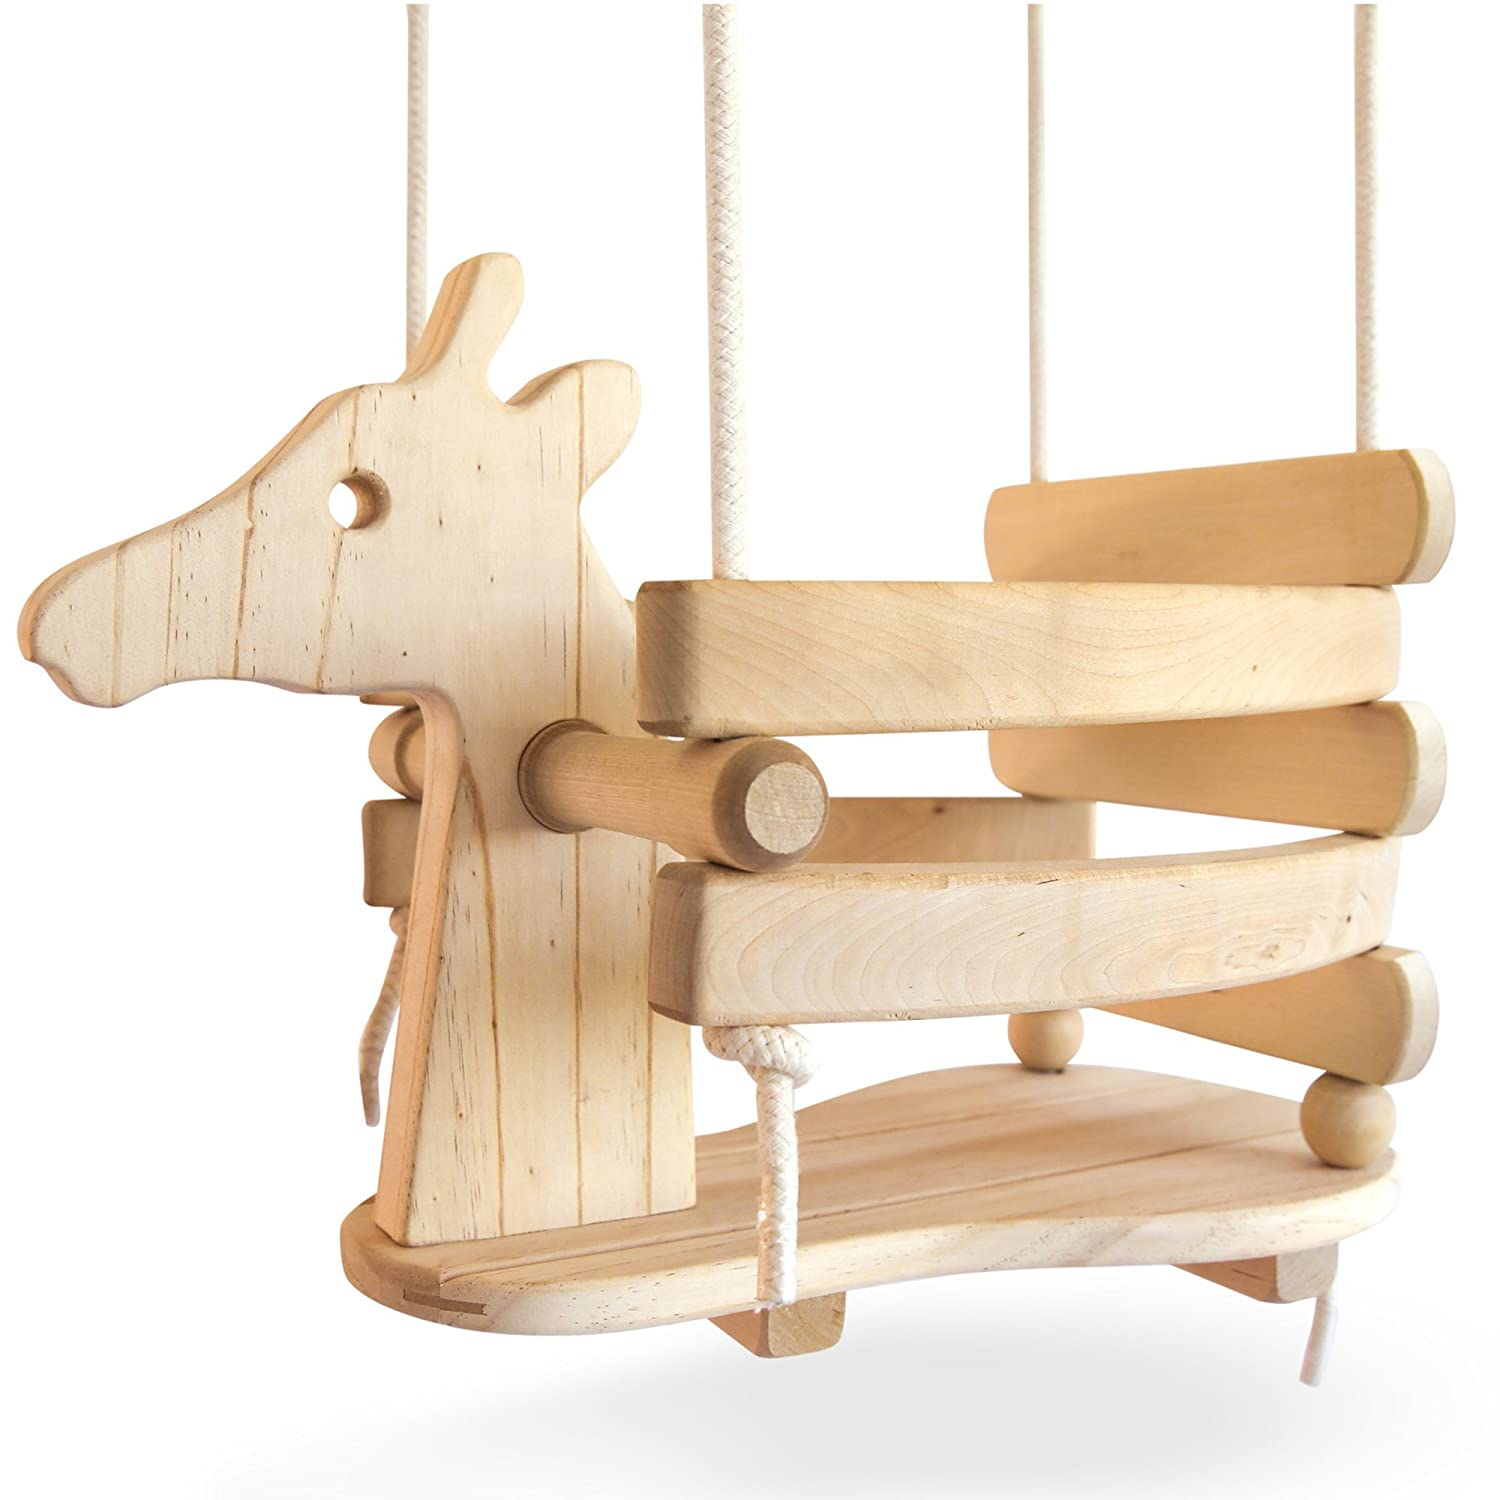 Ecotribe Wooden Giraffe Swing Set for Toddlers - Smooth Birch Wood with Natural Cotton Ropes Outdoor & Indoor Swing